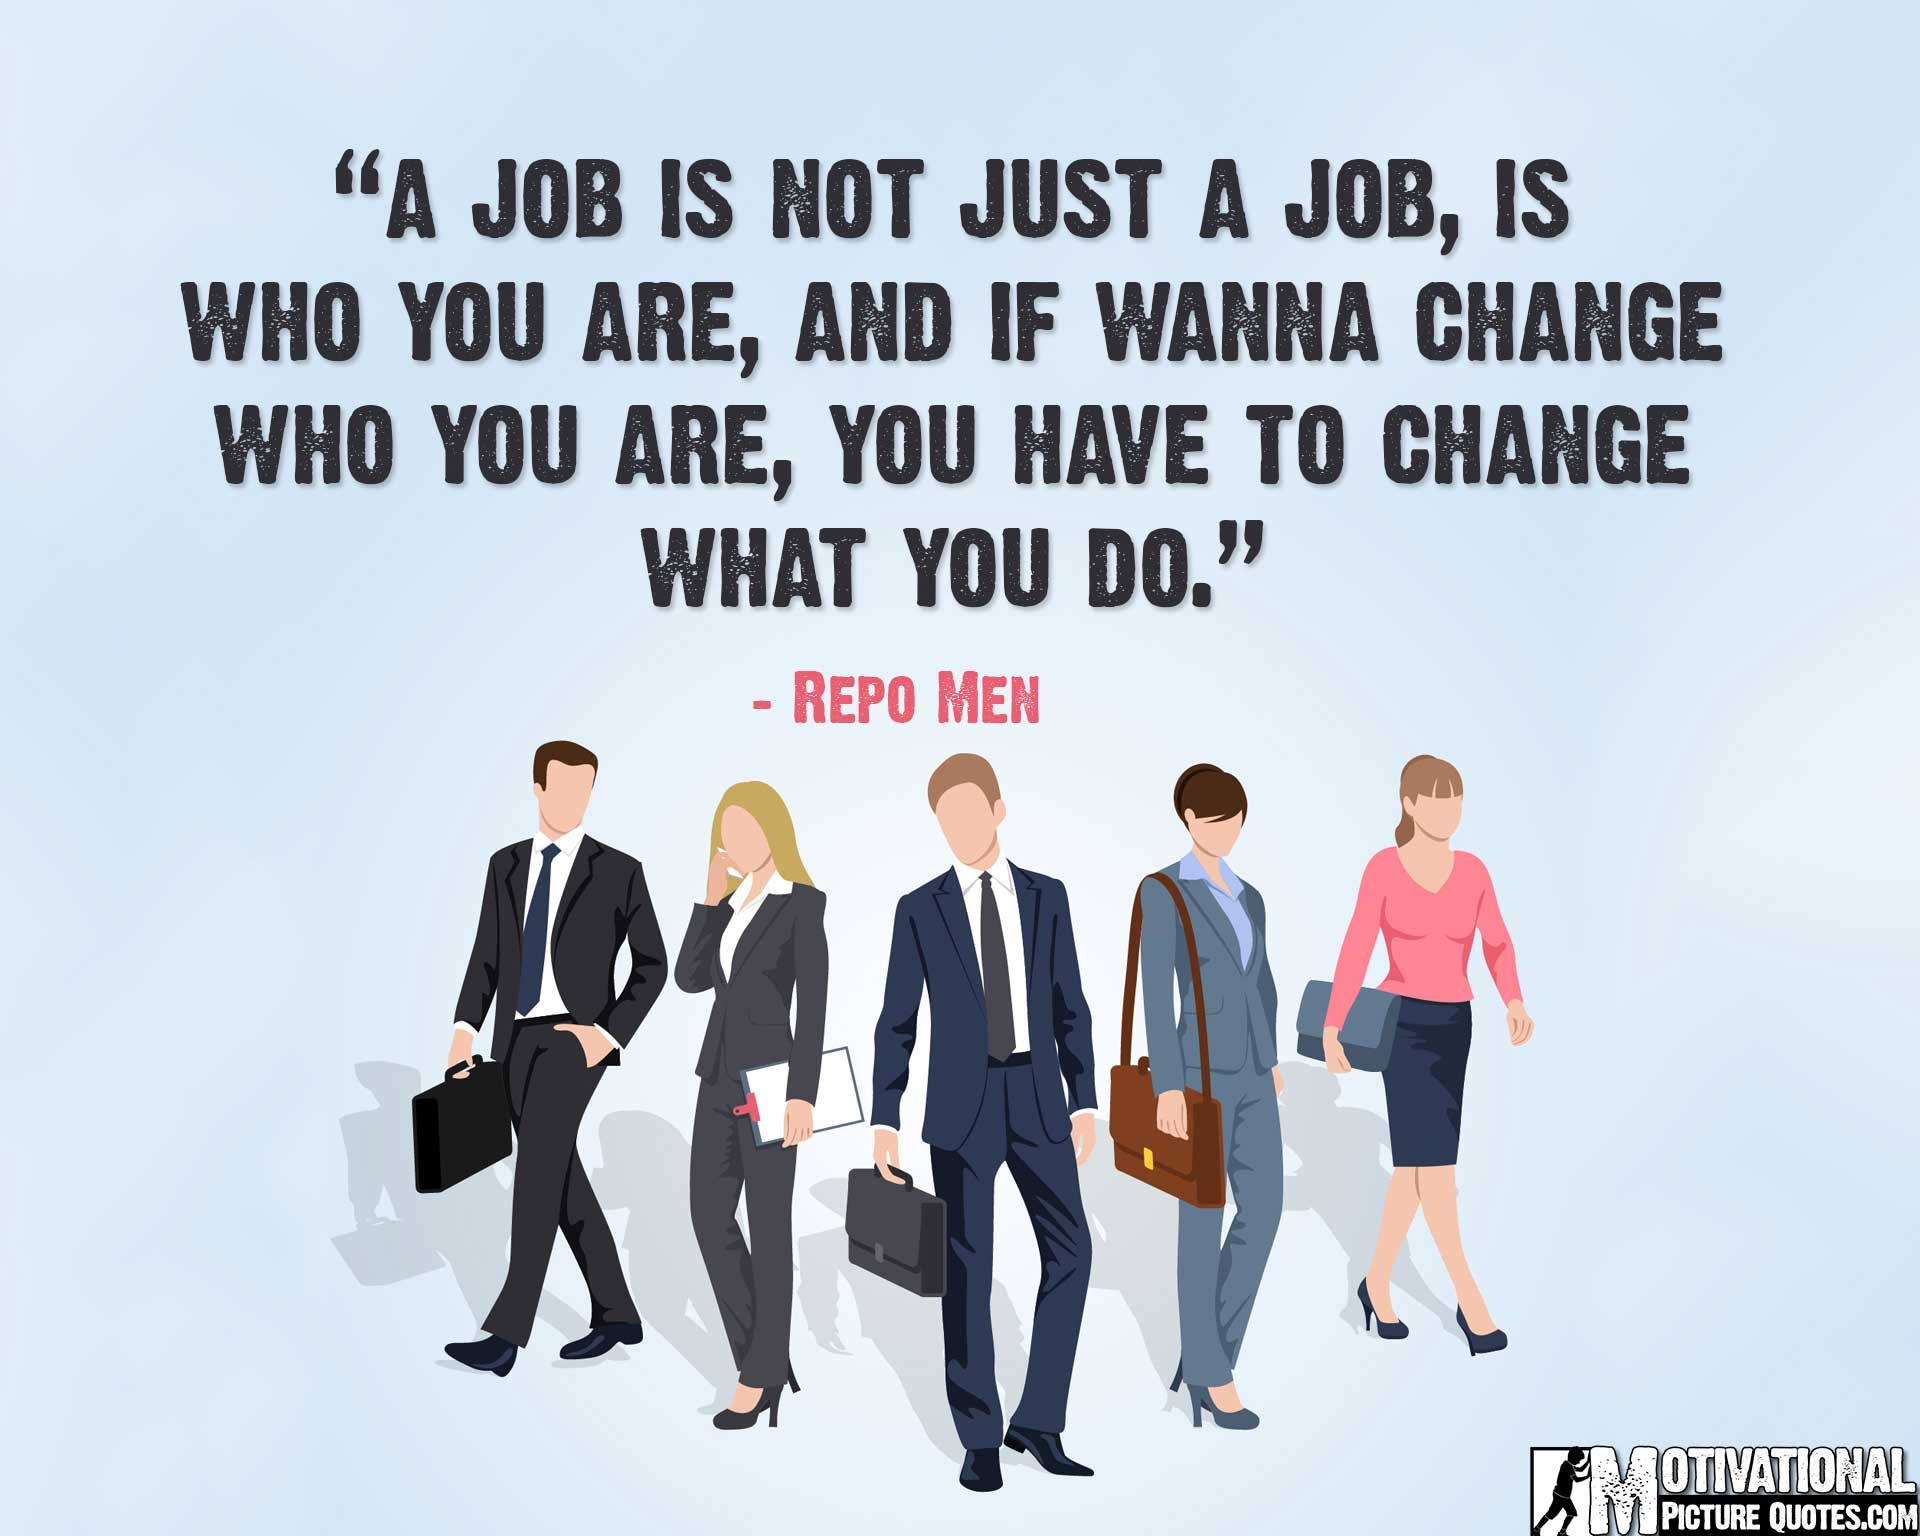 job motivation quotes job quotes images best job satisfaction and motivational quotes images for everyday inspiration in life a collection of famous job motivation quotes for employee